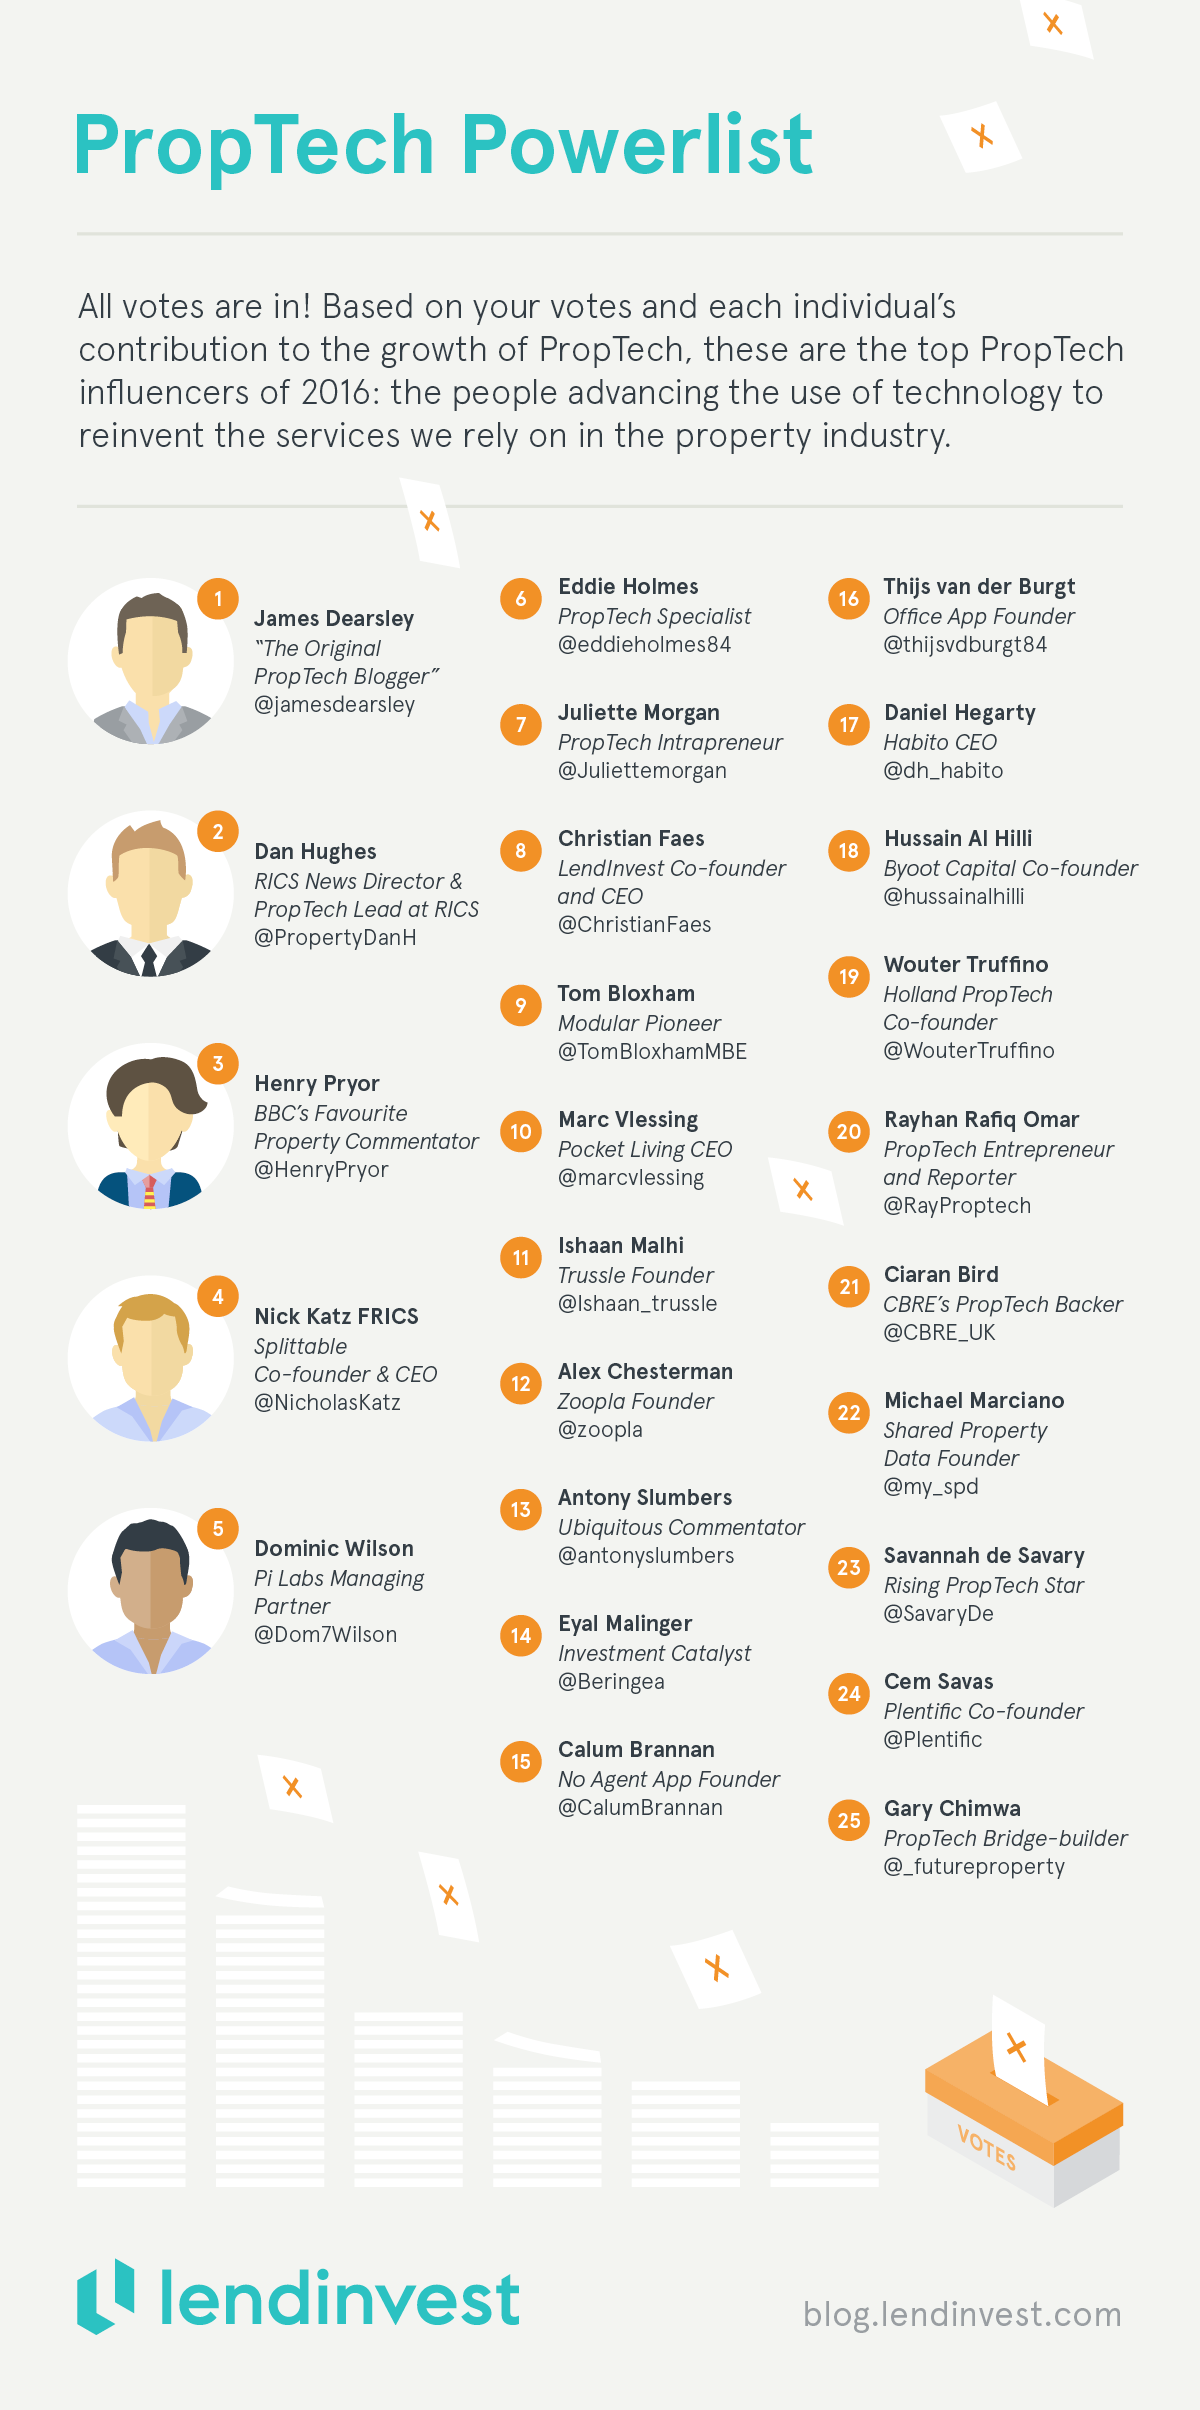 proptech-influencer-profiles